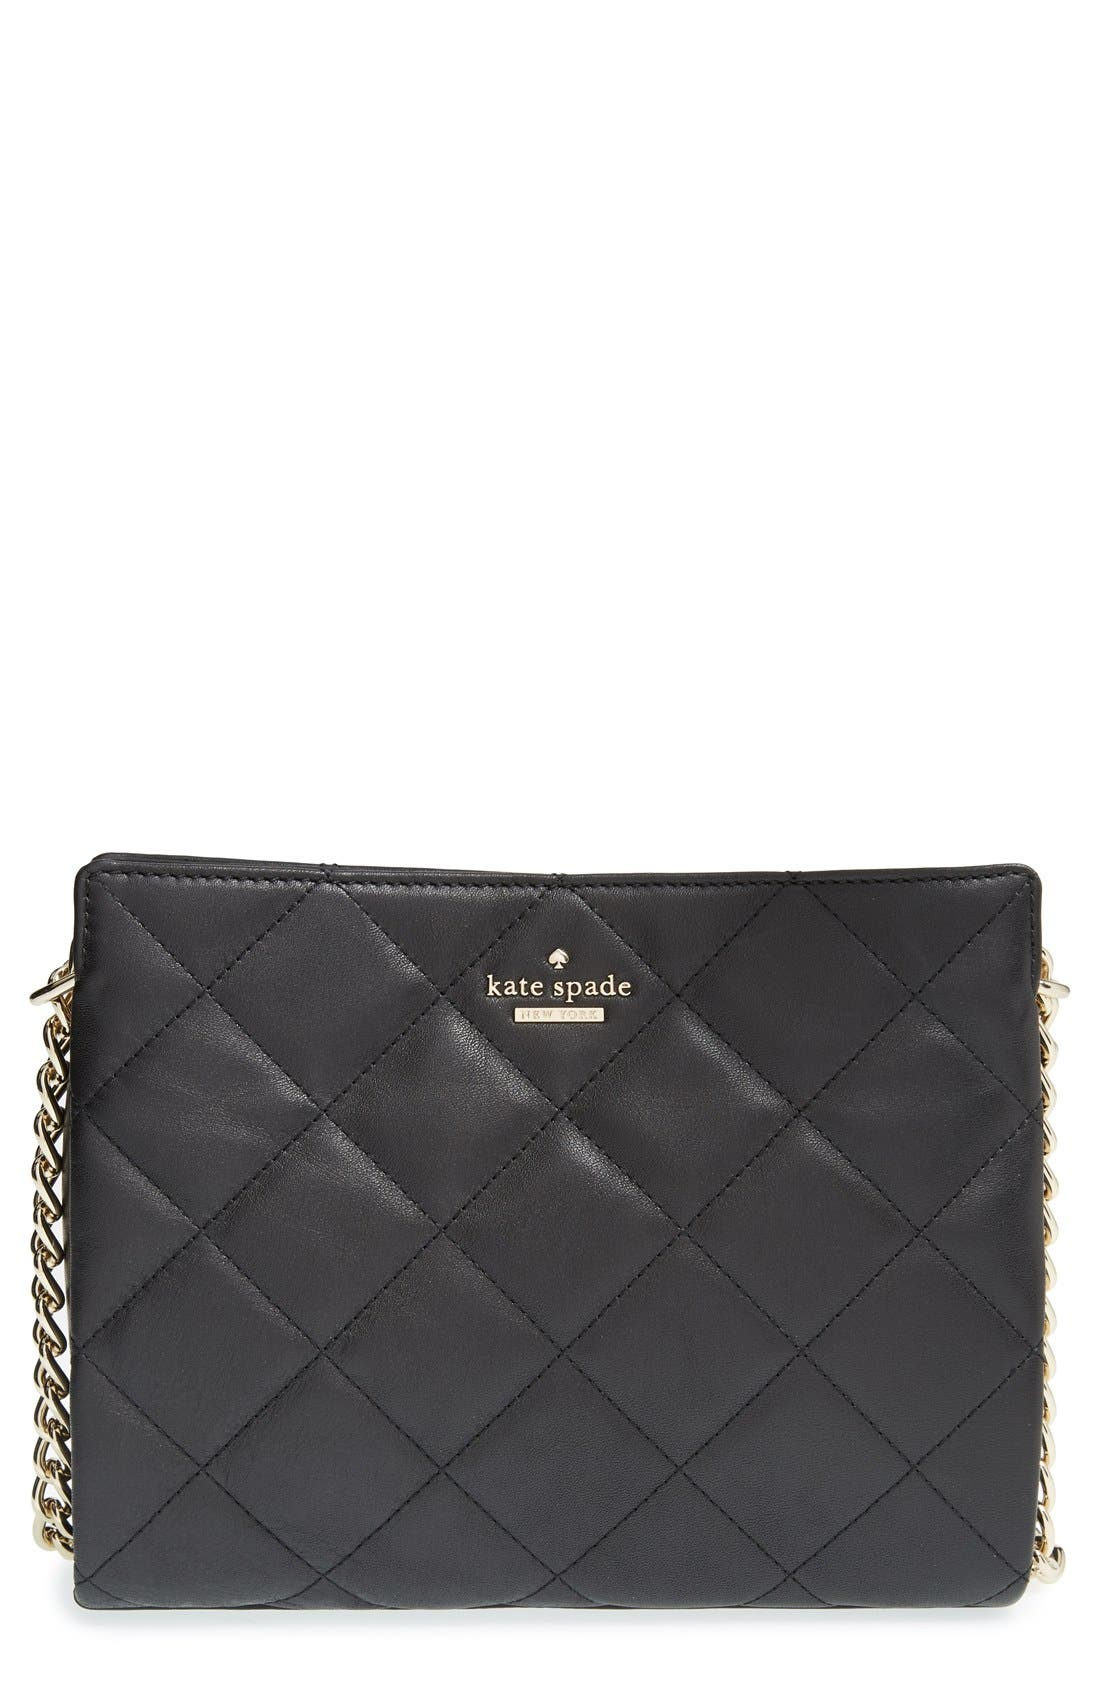 Main Image - kate spade new york 'emerson place - mini convertible phoebe' quilted leather shoulder bag